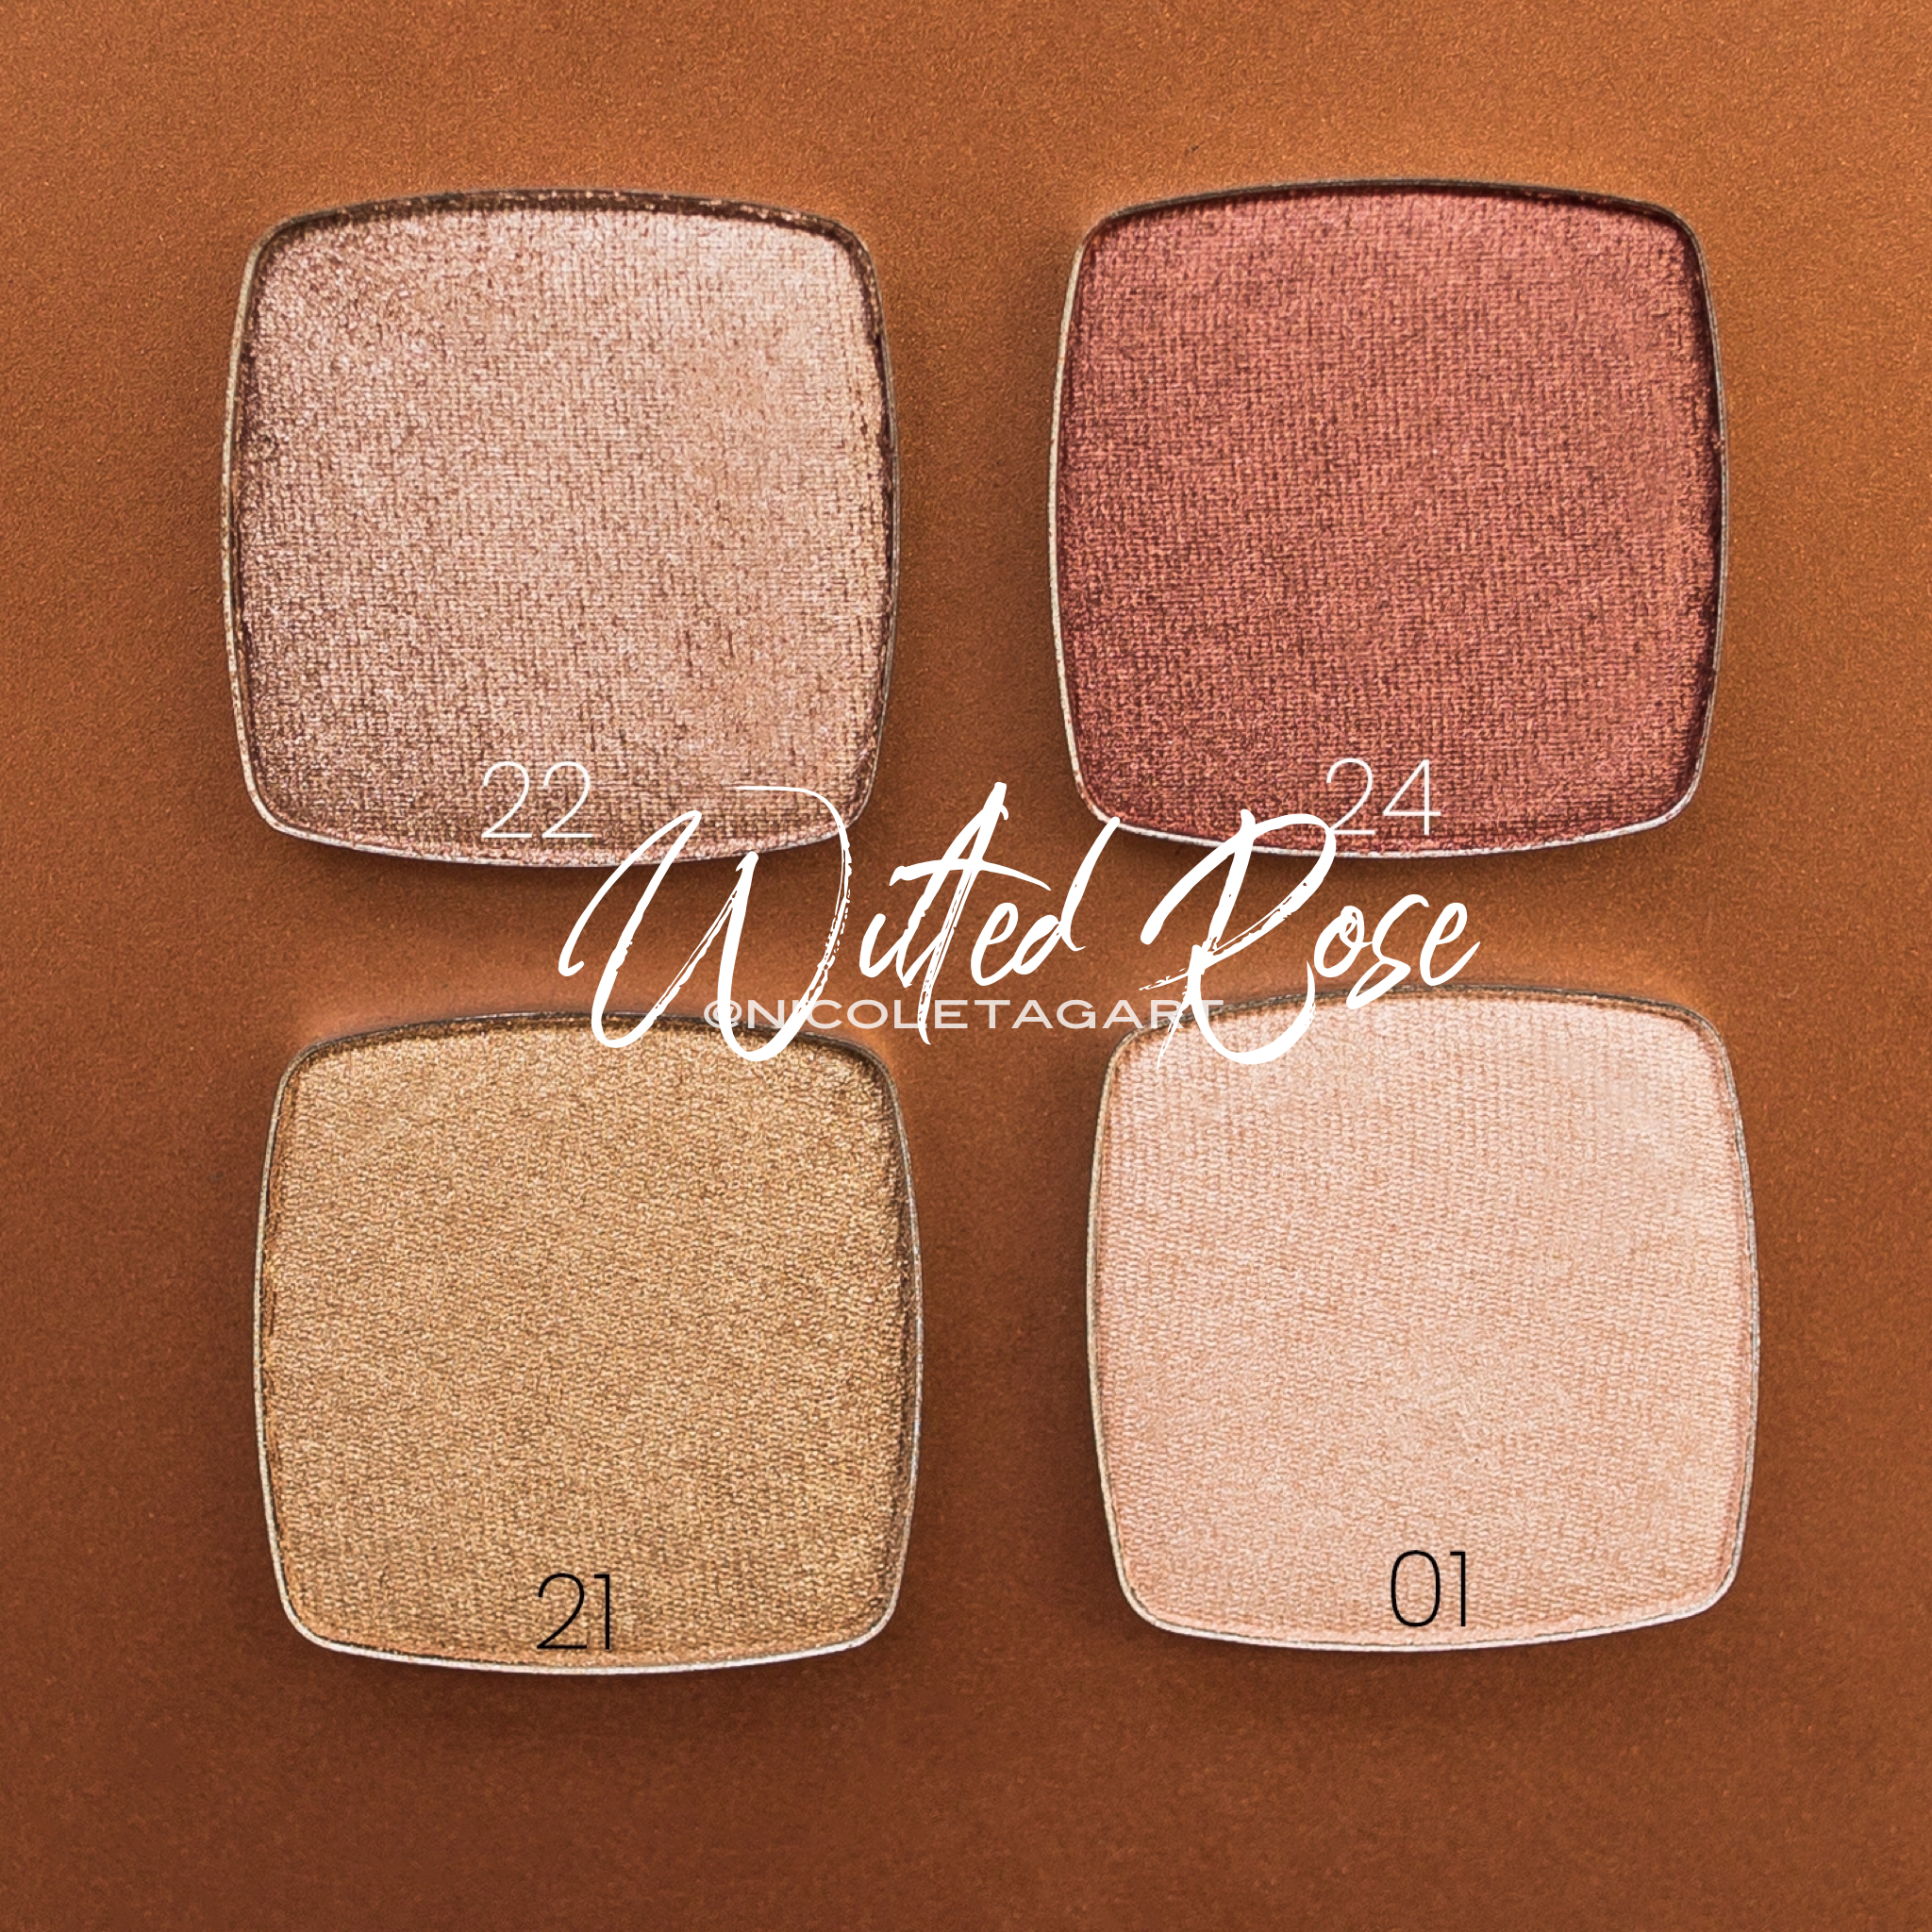 LimeLife by Alcone Alcone makeup, Shimmer eyeshadow